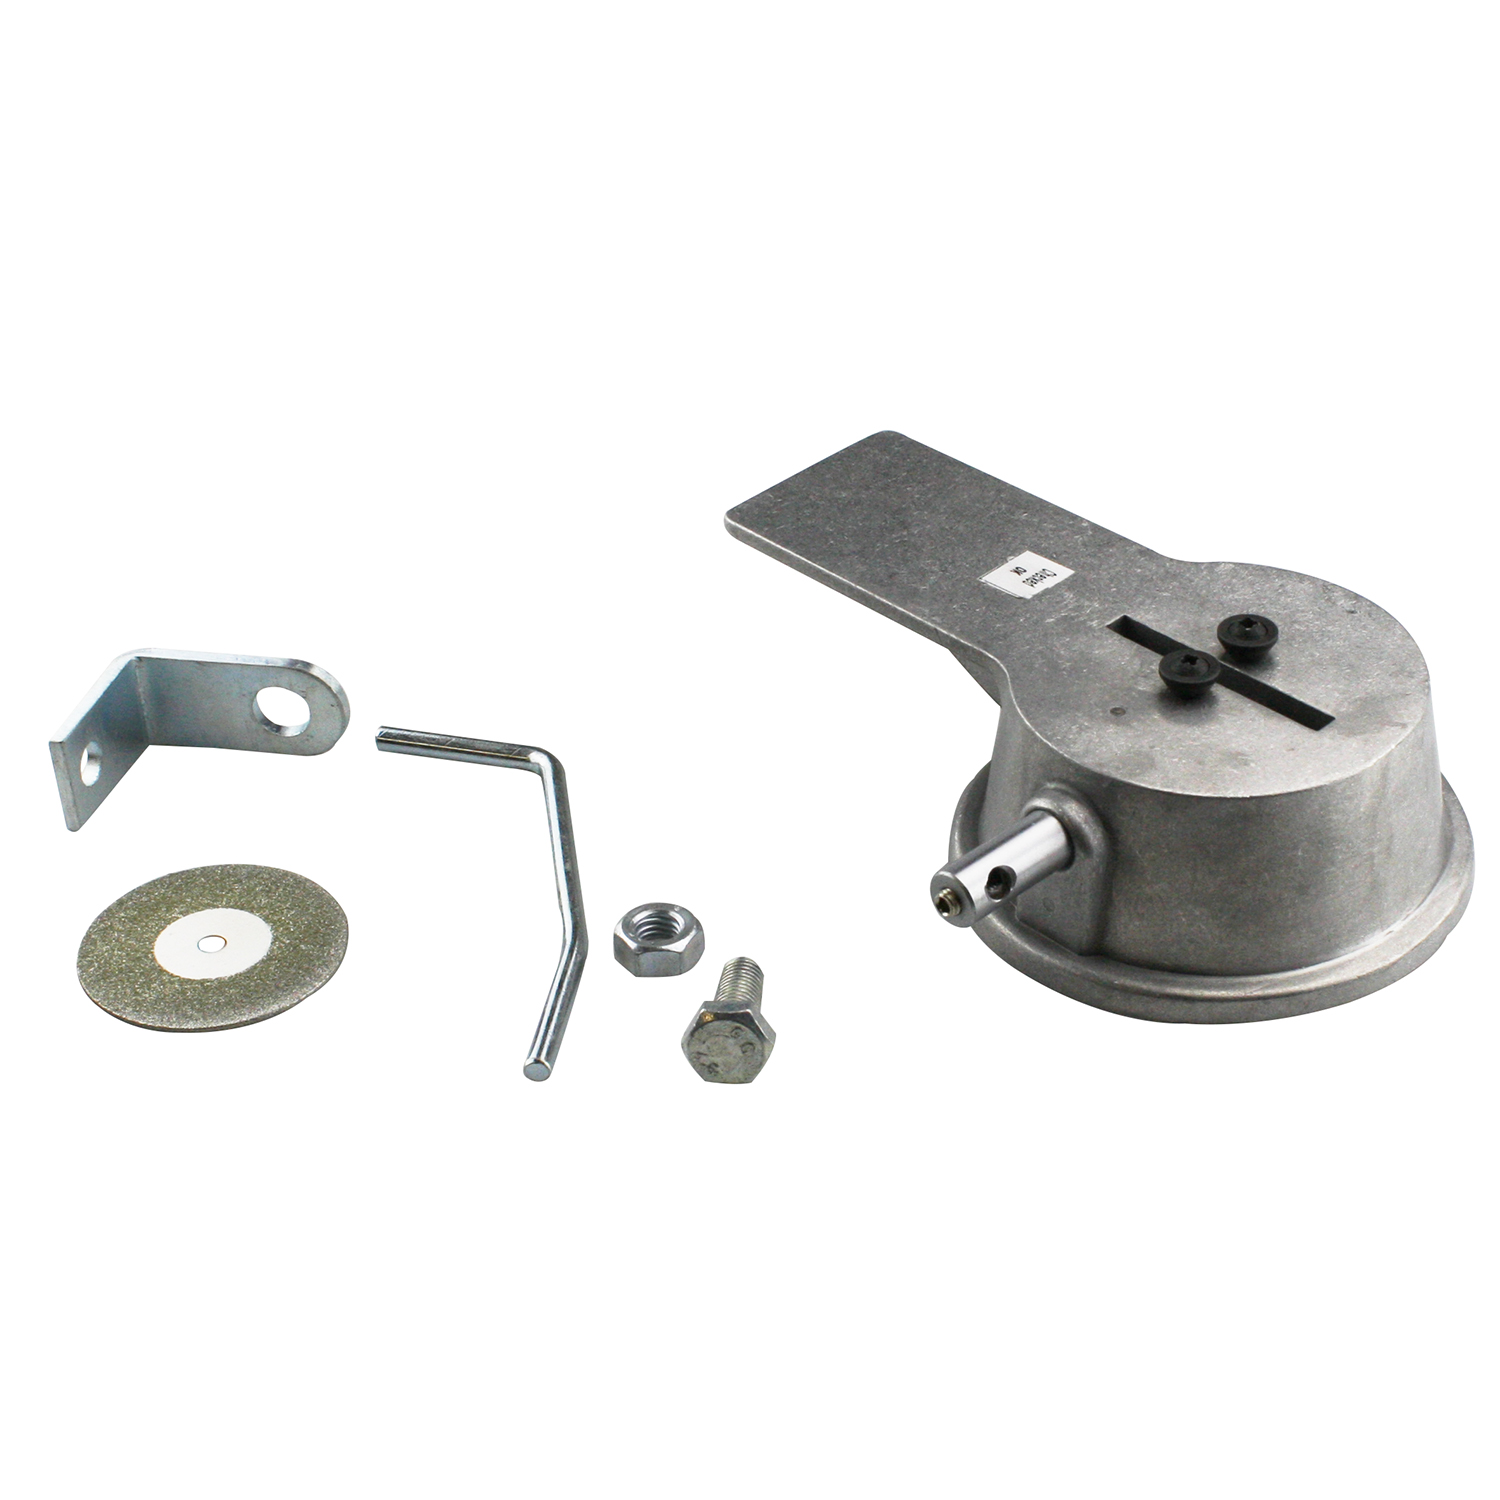 Manual Piston Ring Filer Grinder Comes with 120 Grit Grinding Wheel Replaces# 66785